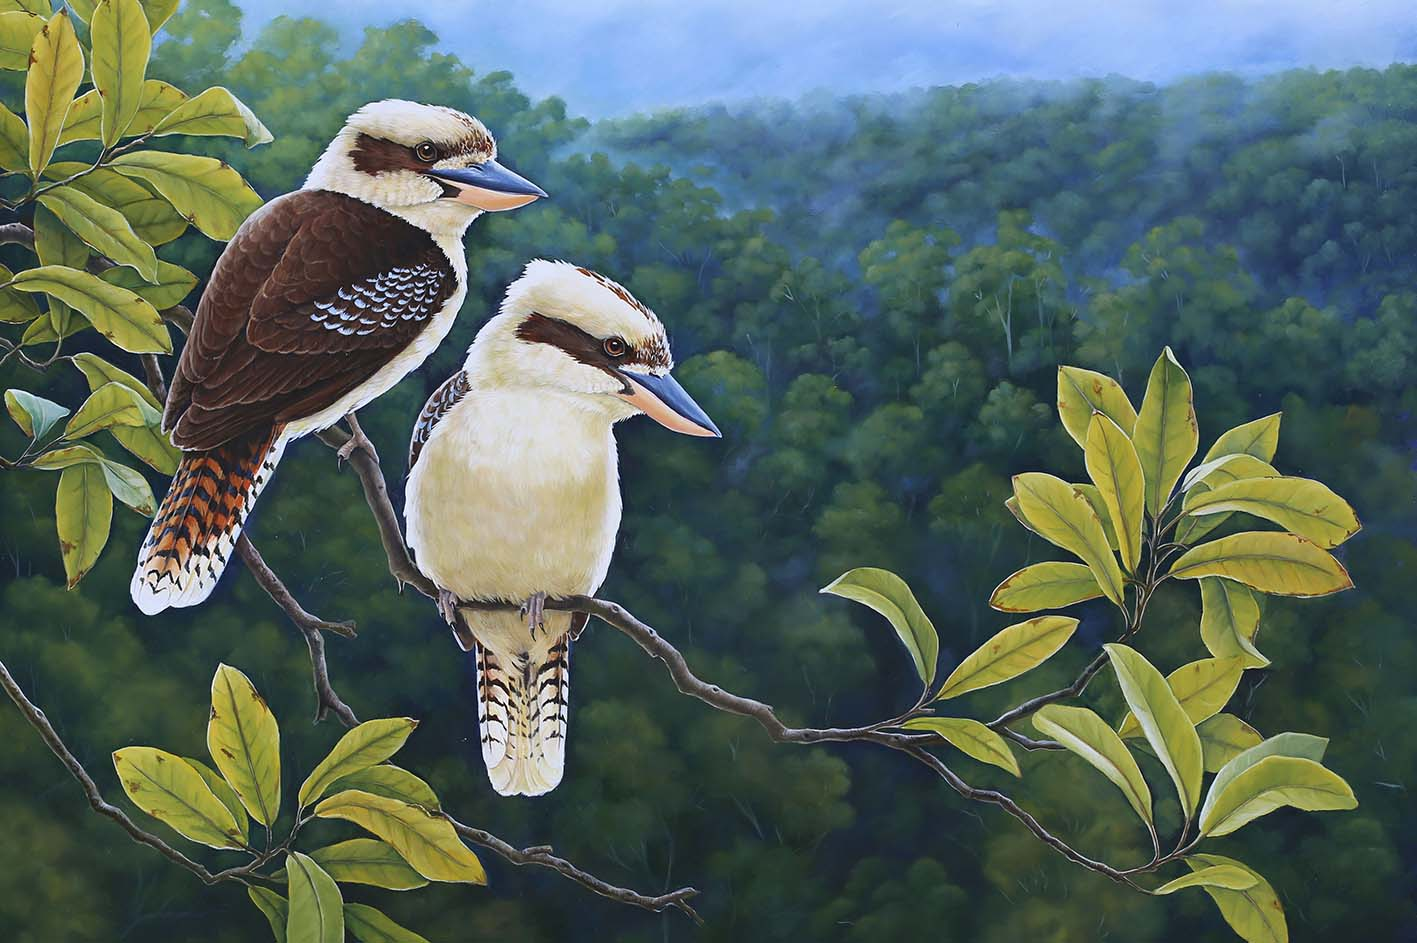 Before the Rain - Kookaburras